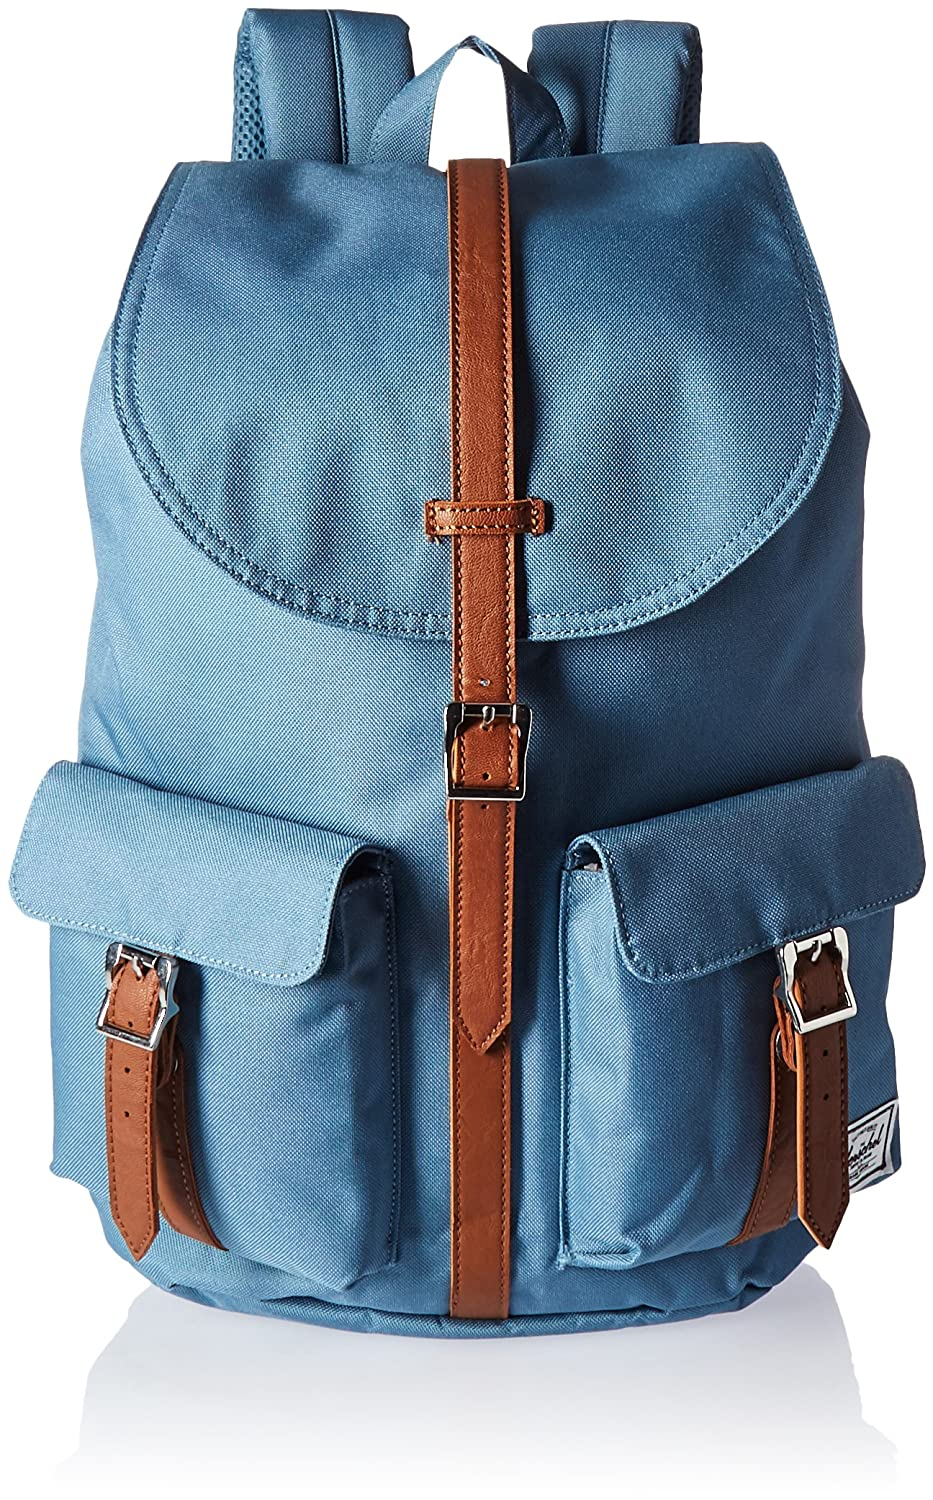 Herschel Dawson Womens Lunar Rock/Black Died Veggie Tan Leather Herschel Supply 10210-00950-OS